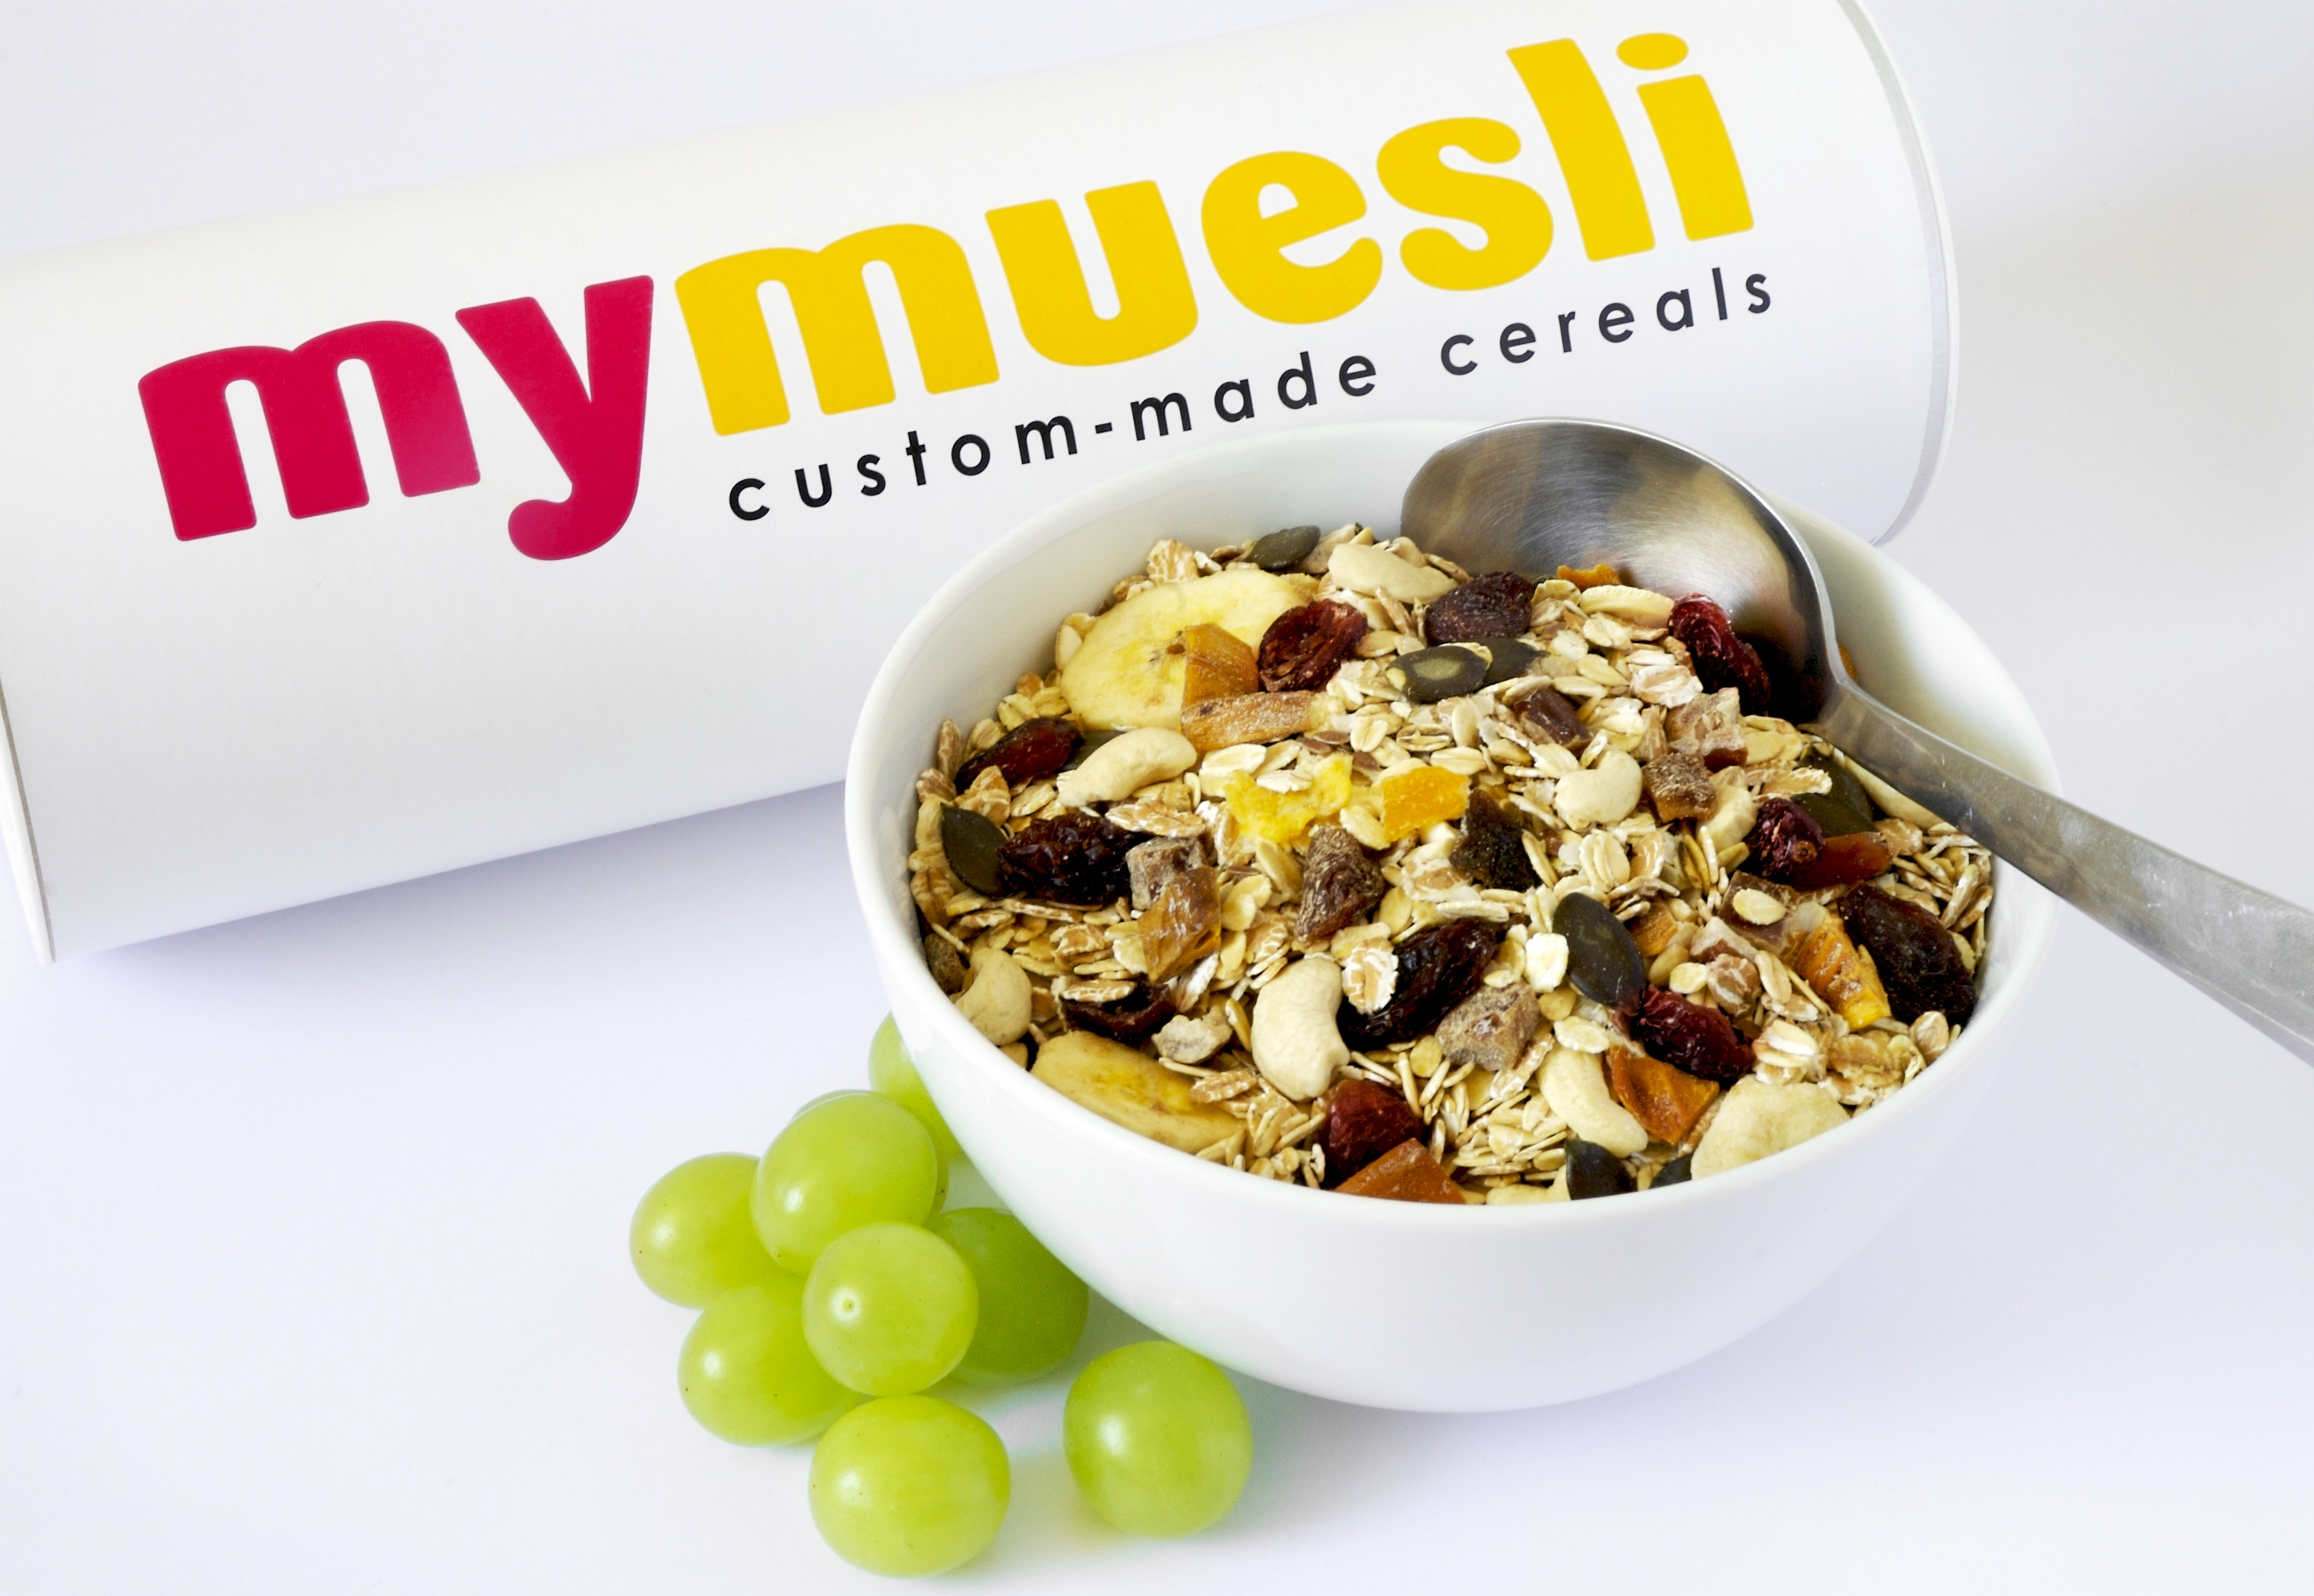 Cereal personalizado - Marketing online